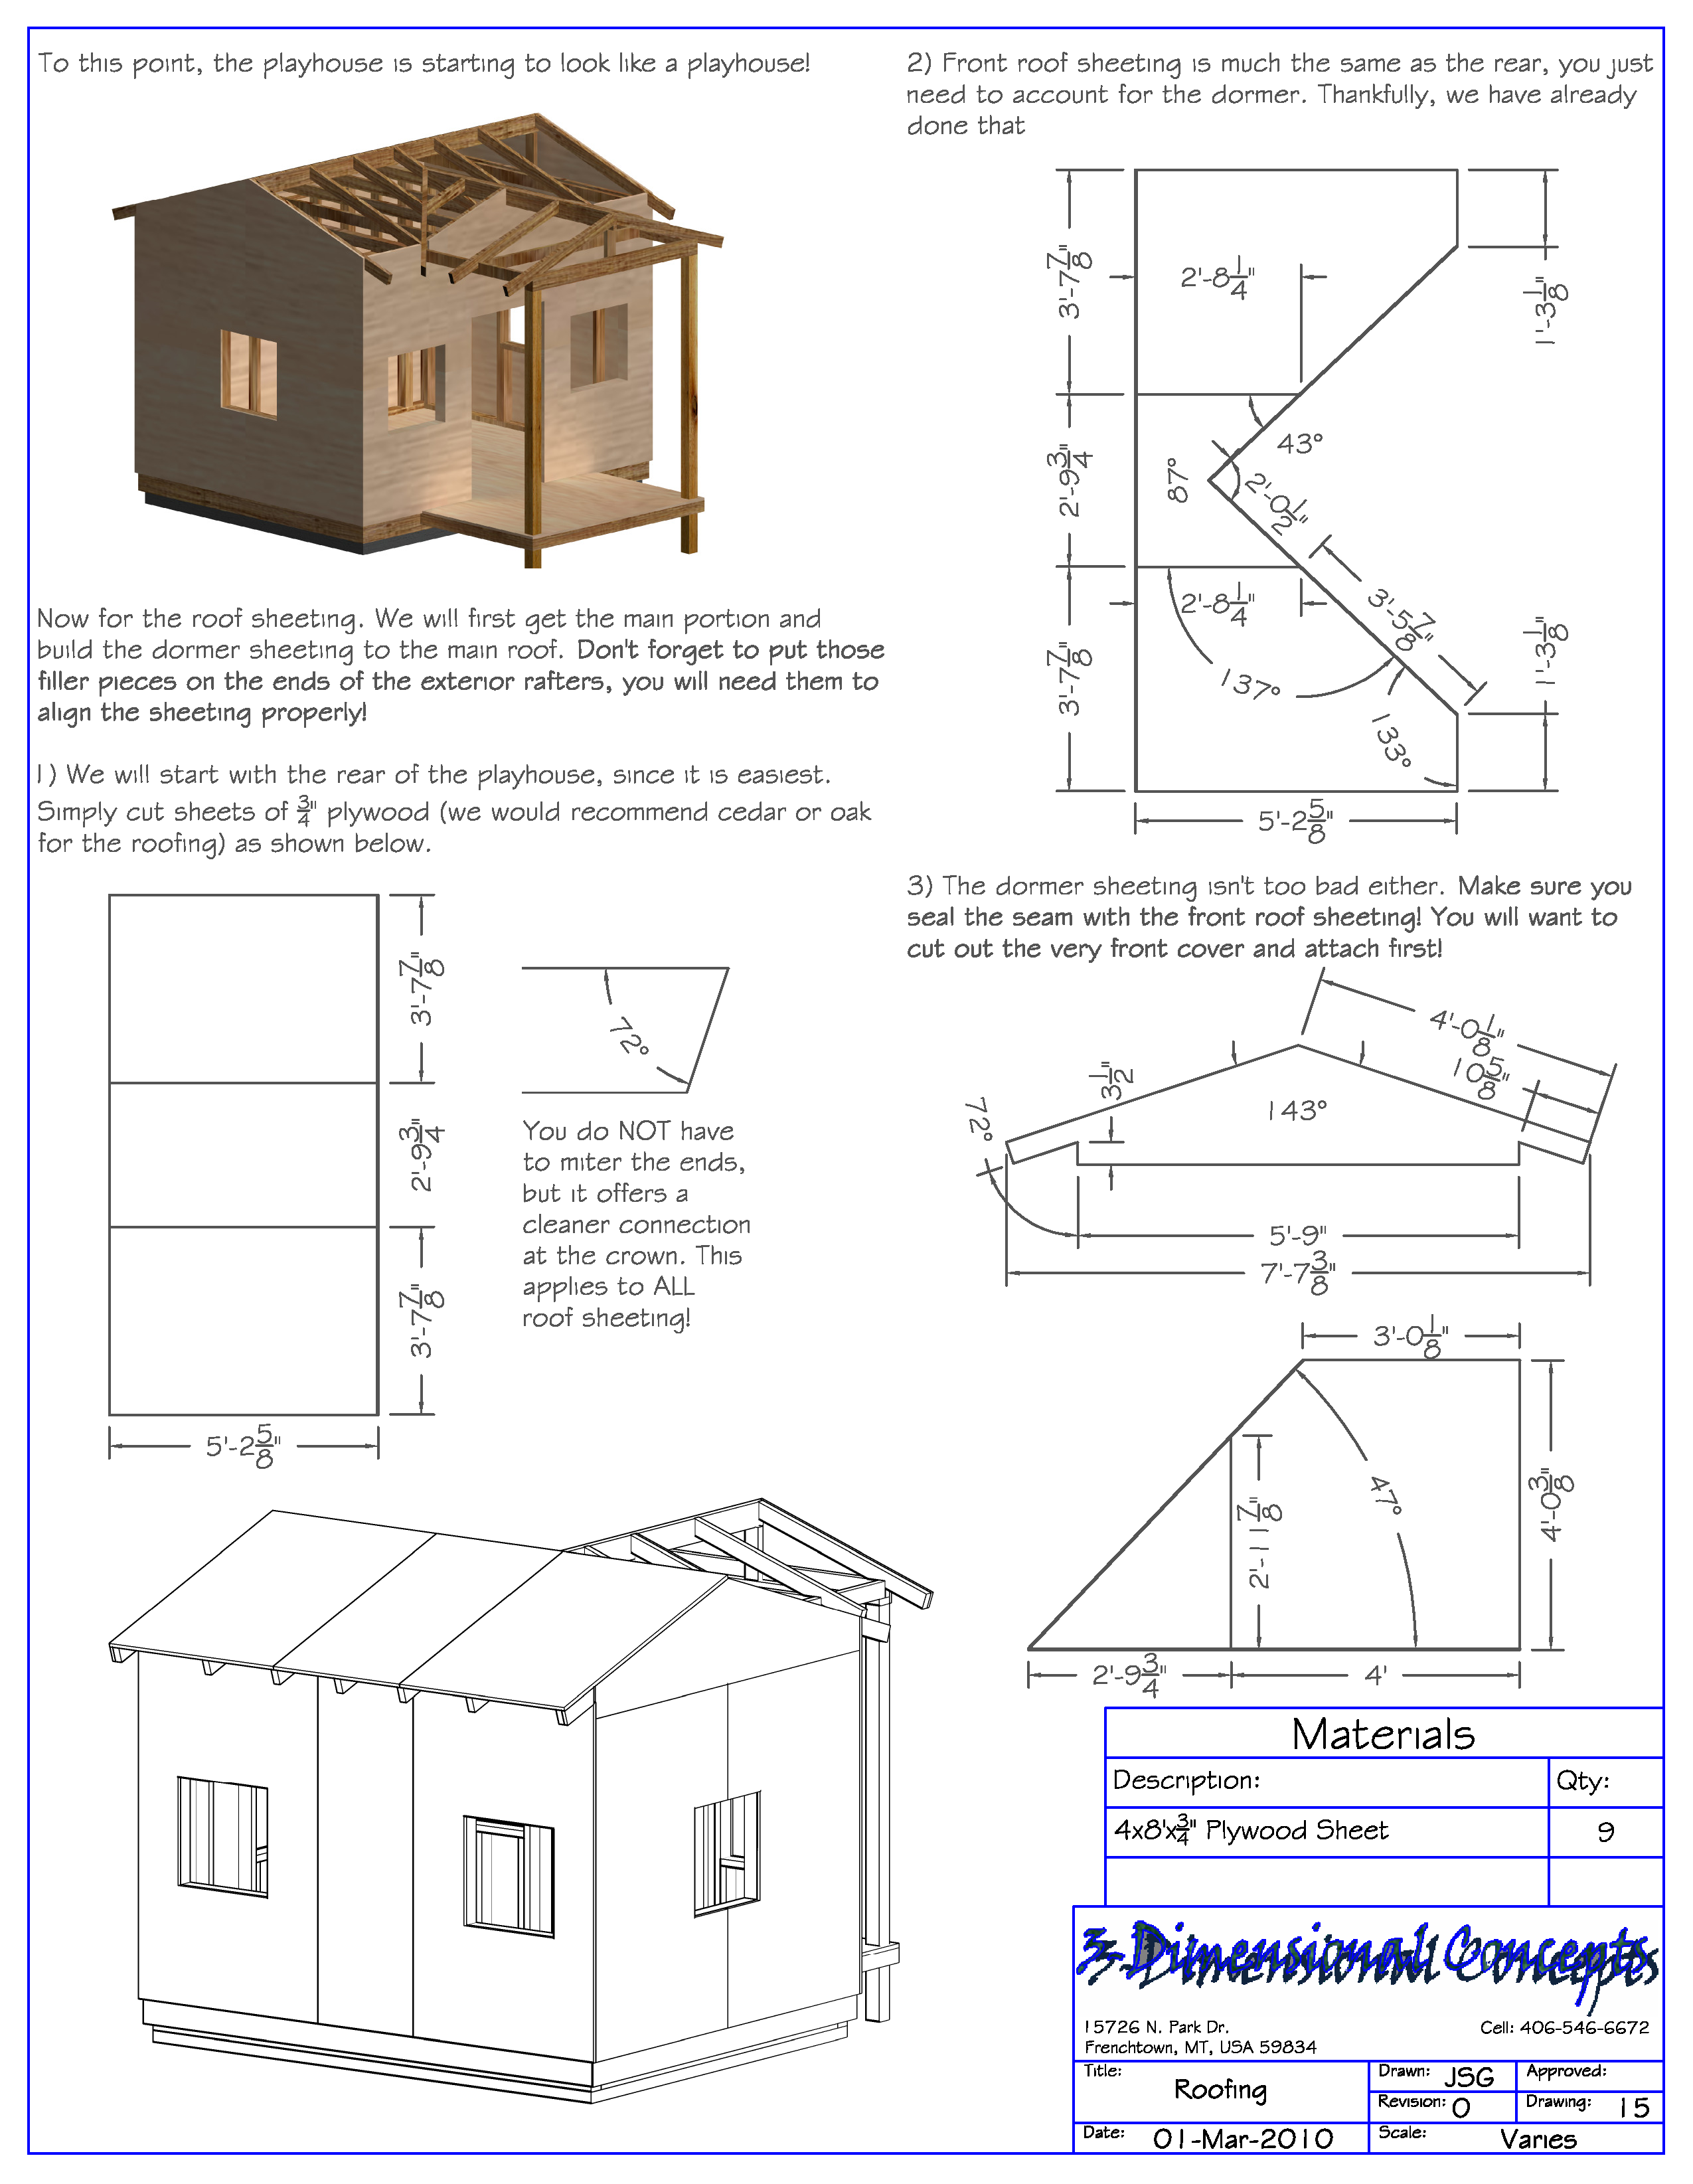 Playhouse For Kids Playhouse Plans Child S Outdoor Wood Playhouse B Play Houses Playhouse Plans Wood Playhouse